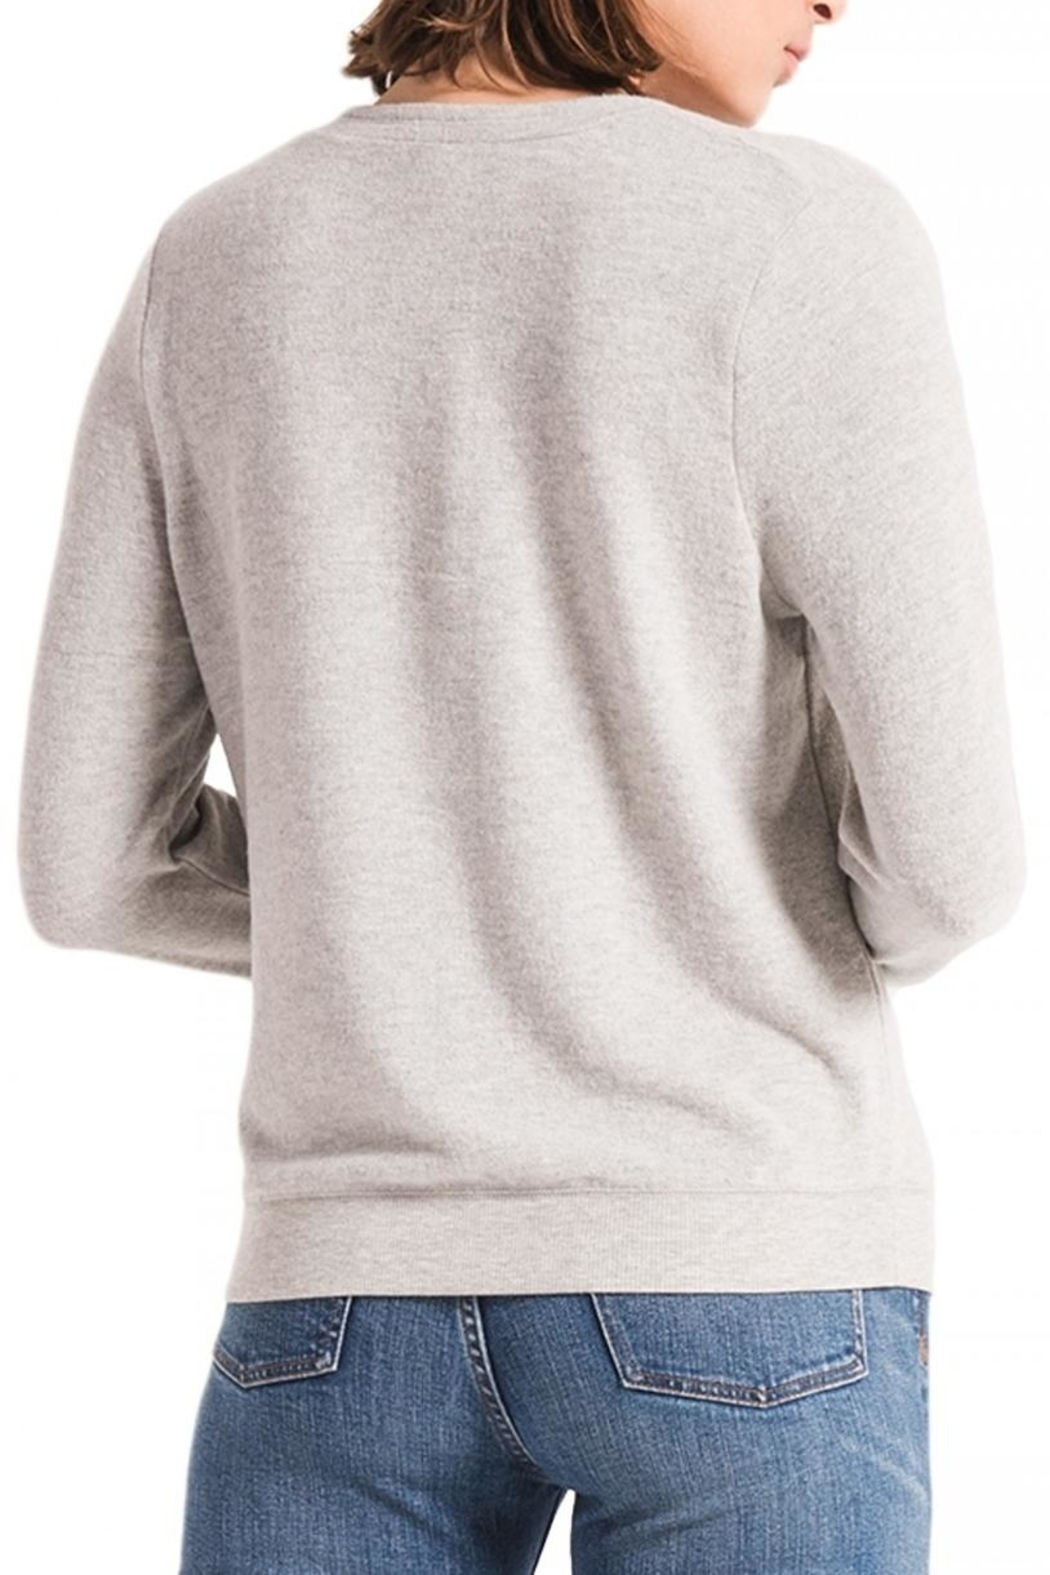 z supply Soft Crossfront Top - Side Cropped Image